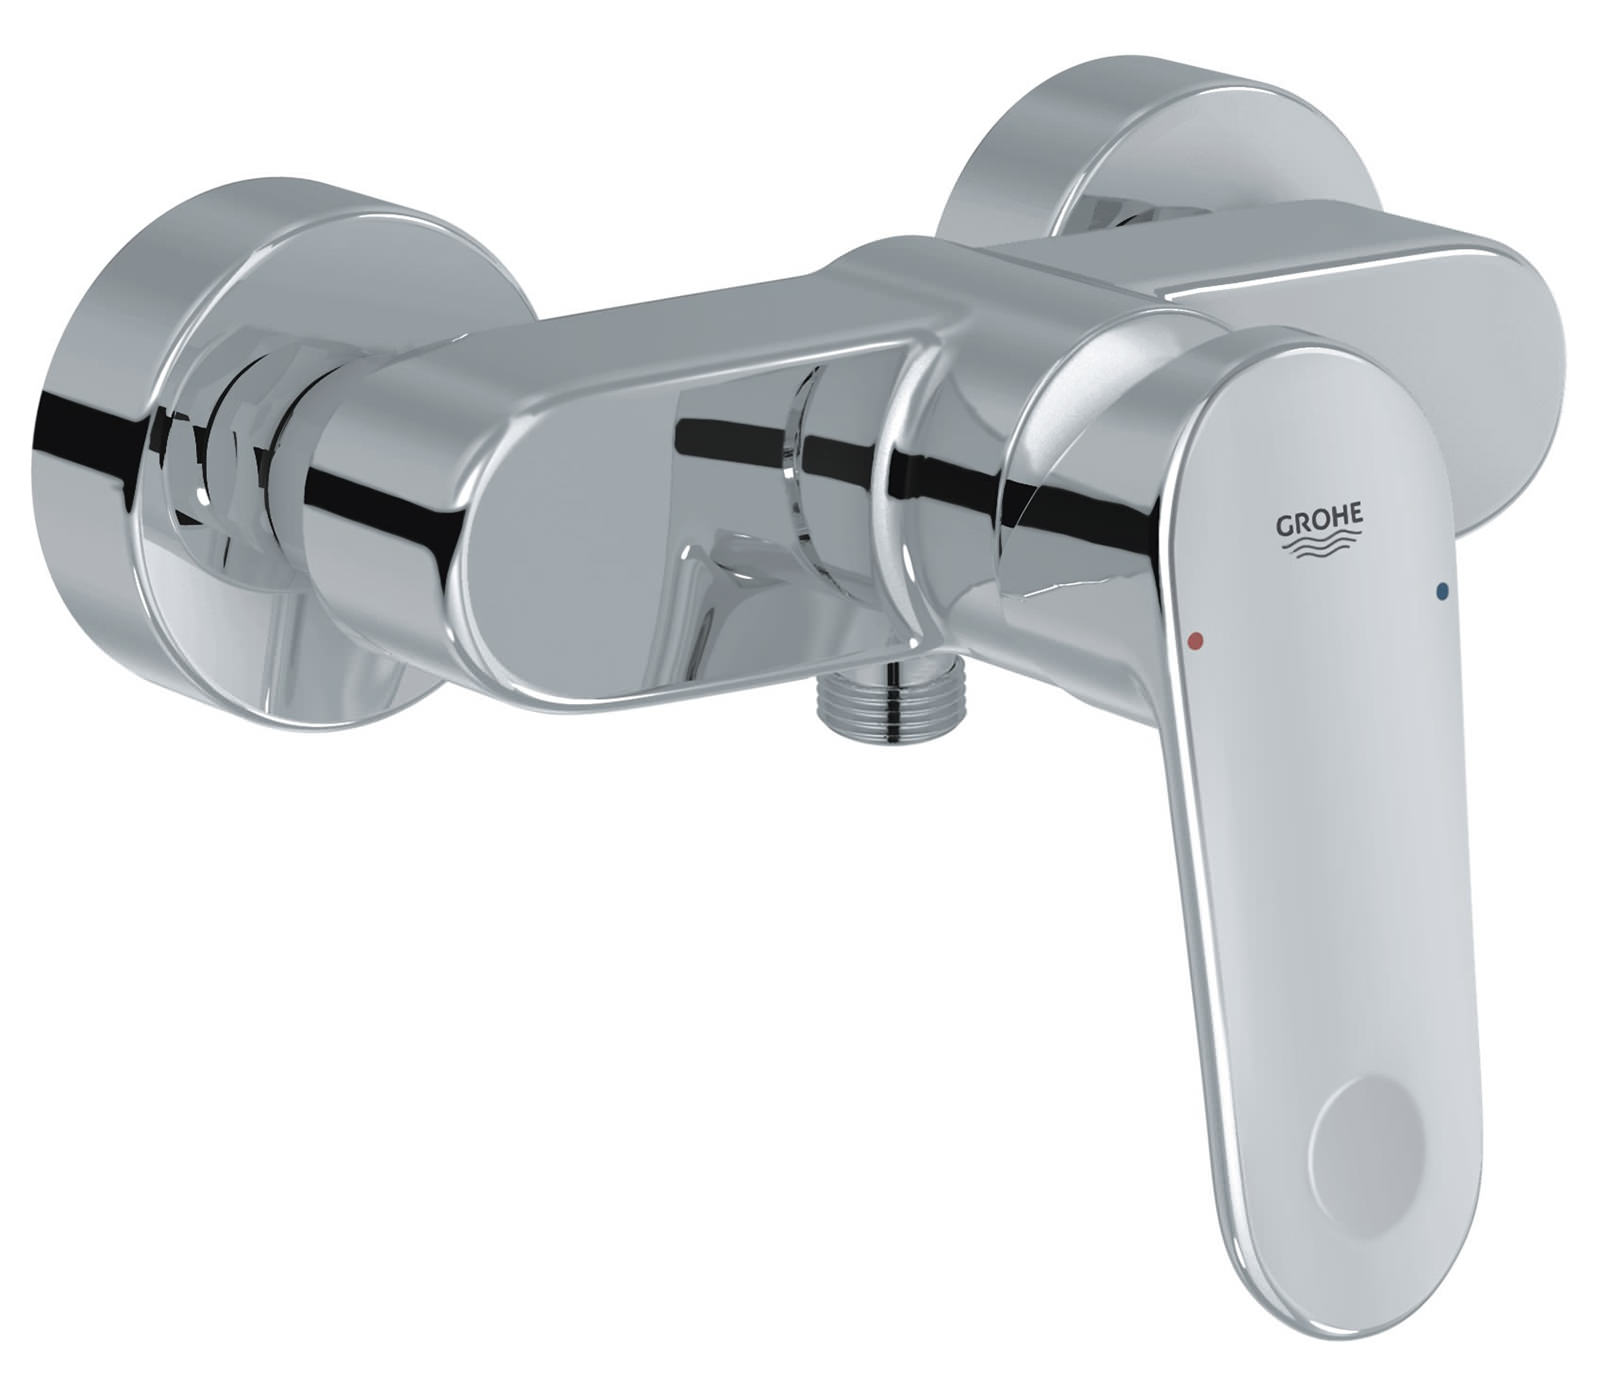 Grohe Europlus Wall Mounted Single Lever Shower Mixer Valve